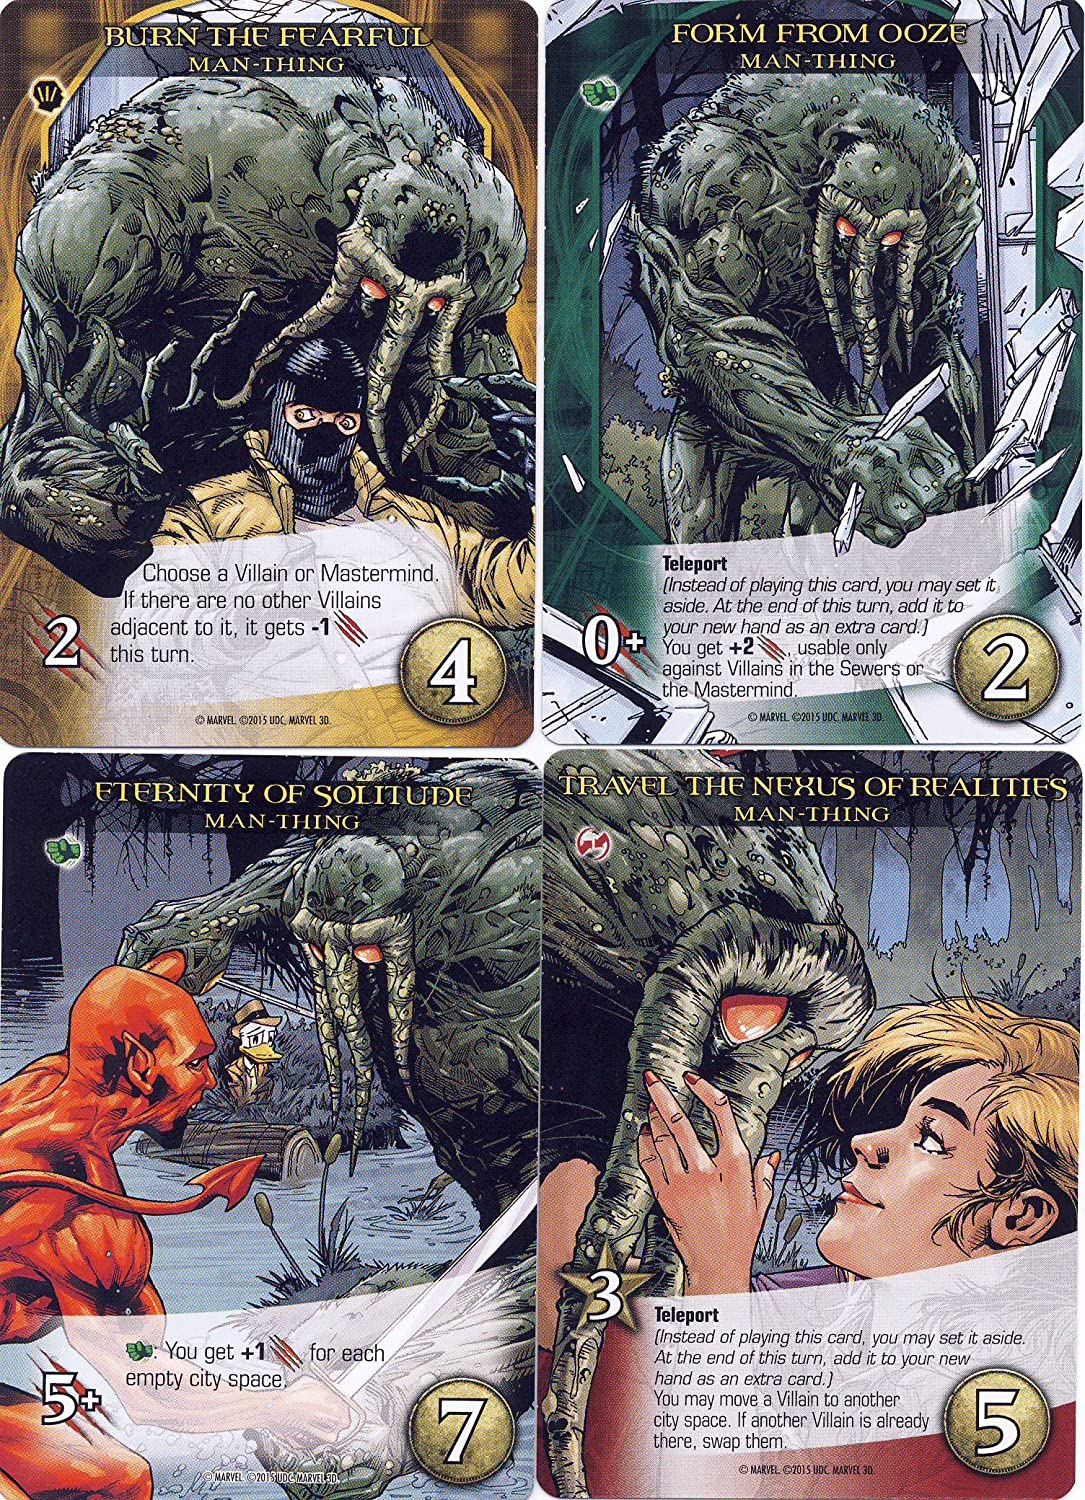 MAN-THING 2015 Upper Deck Marvel 3D LEGENDARY FORM FROM OOZE